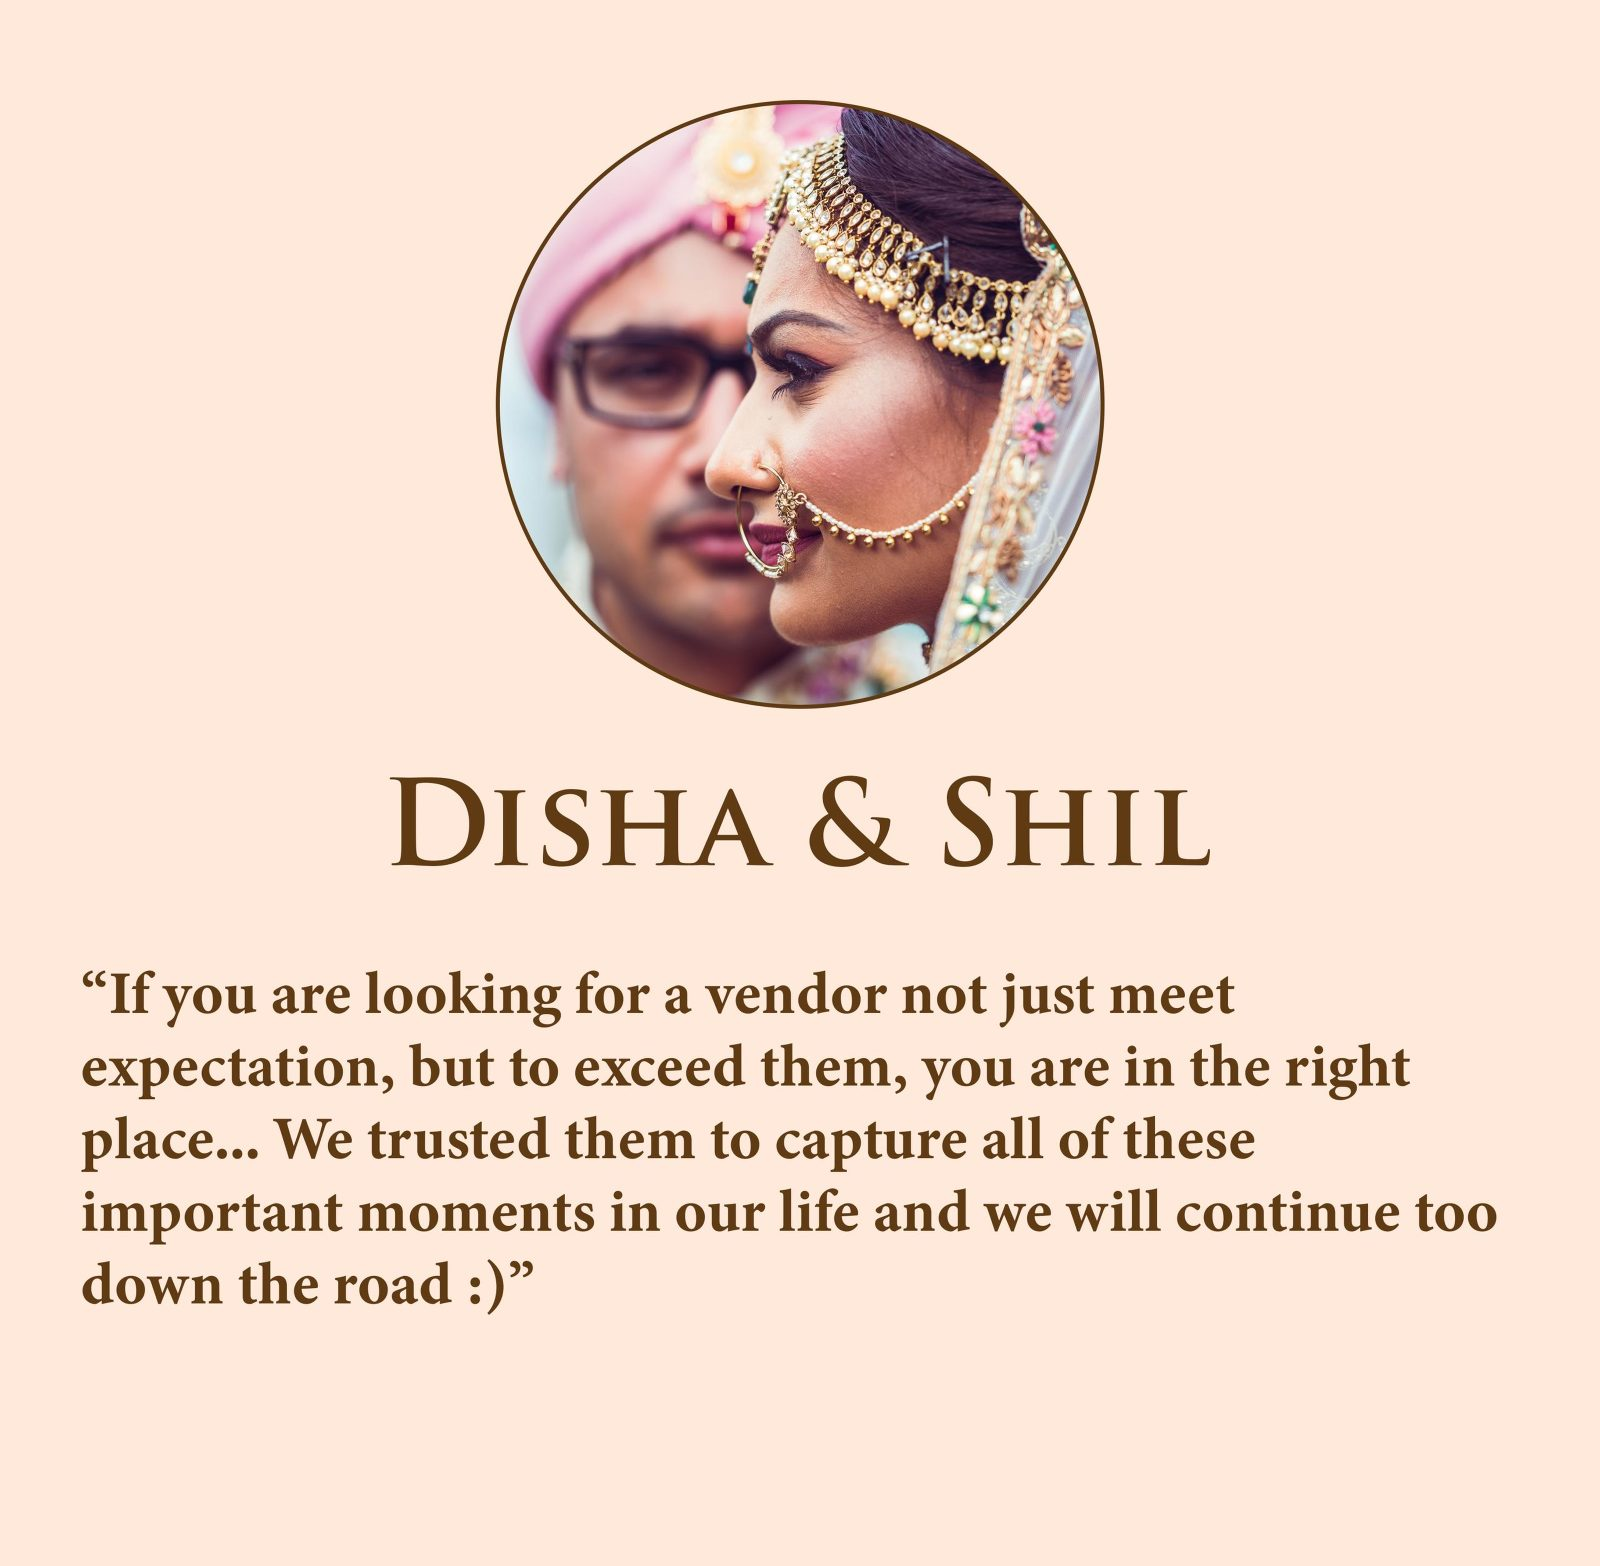 """""""If you are looking for a vendor not just meet expectation, but to exceed them, you are in the right place... We trusted them to capture all of these important moments in our life and we will continue too down the road :)"""""""